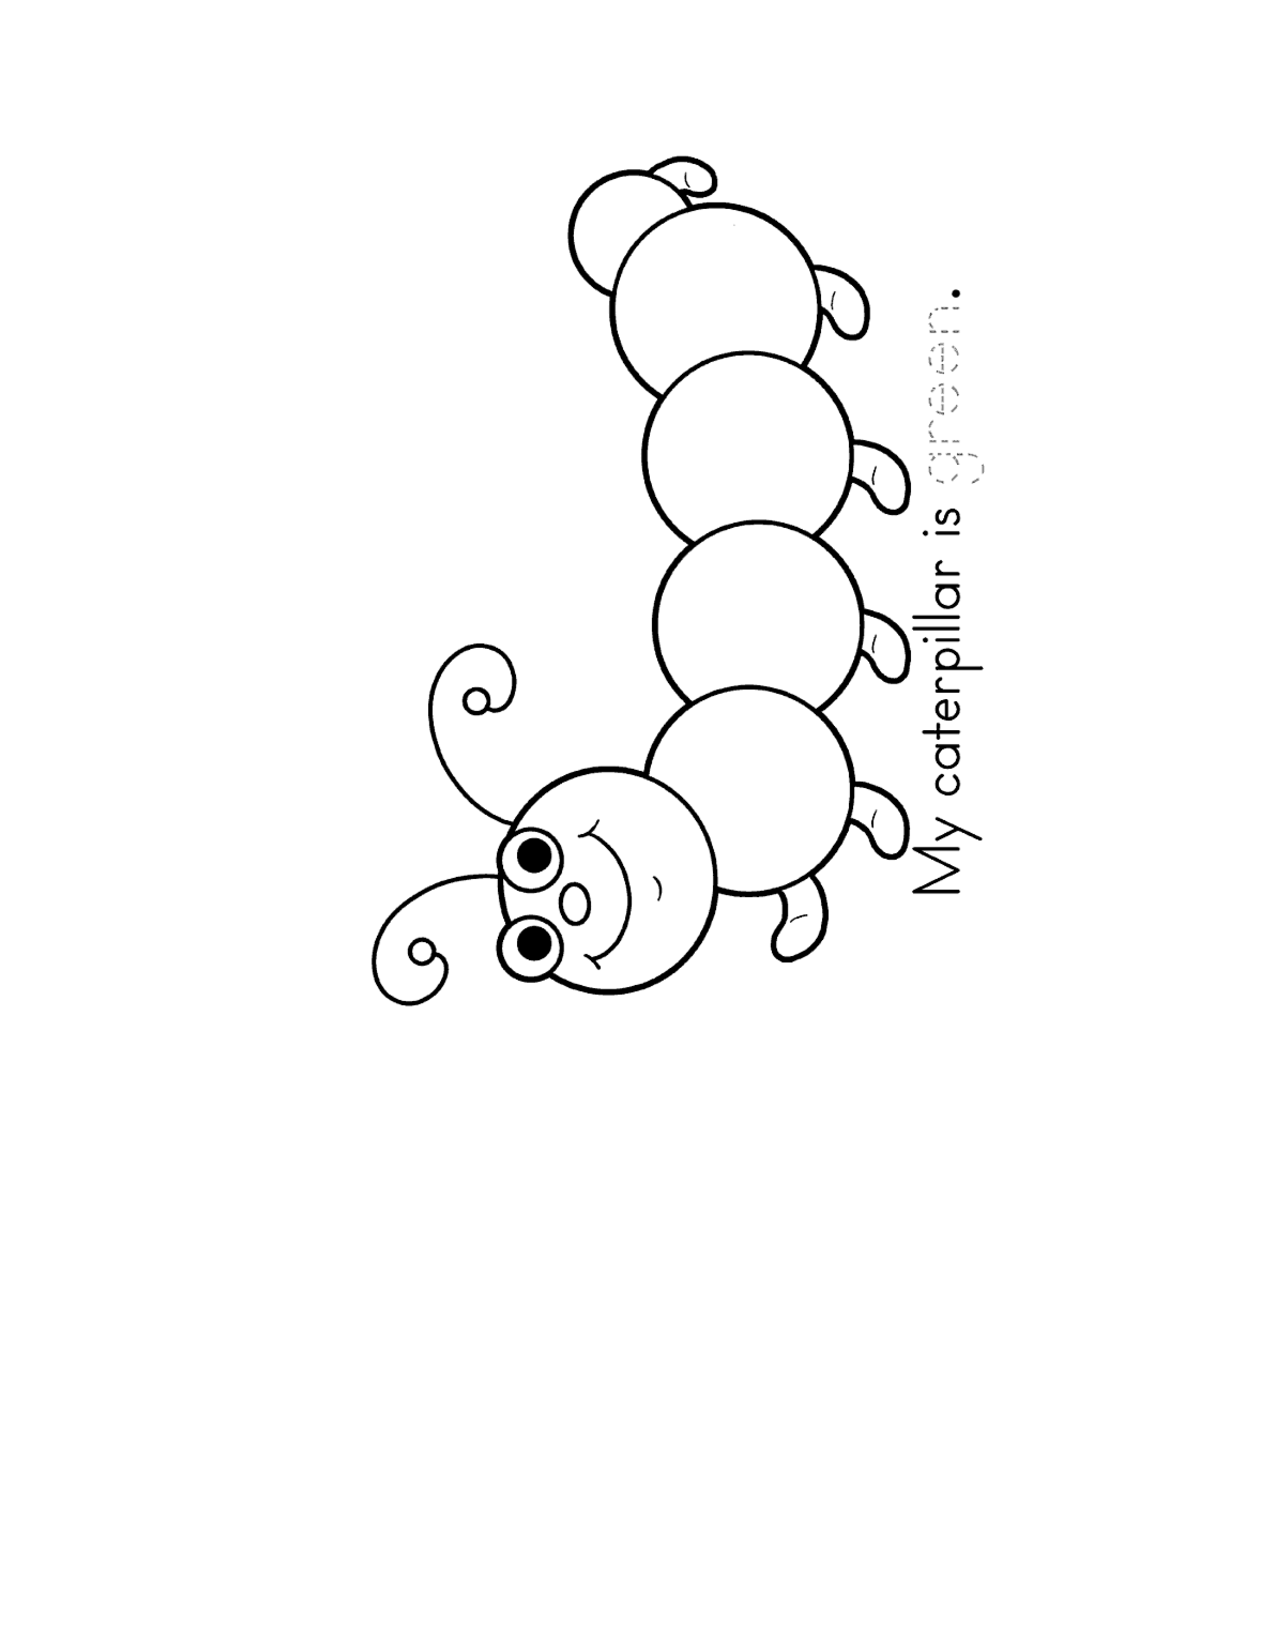 caterpillar for coloring caterpillar coloring pages to download and print for free coloring for caterpillar